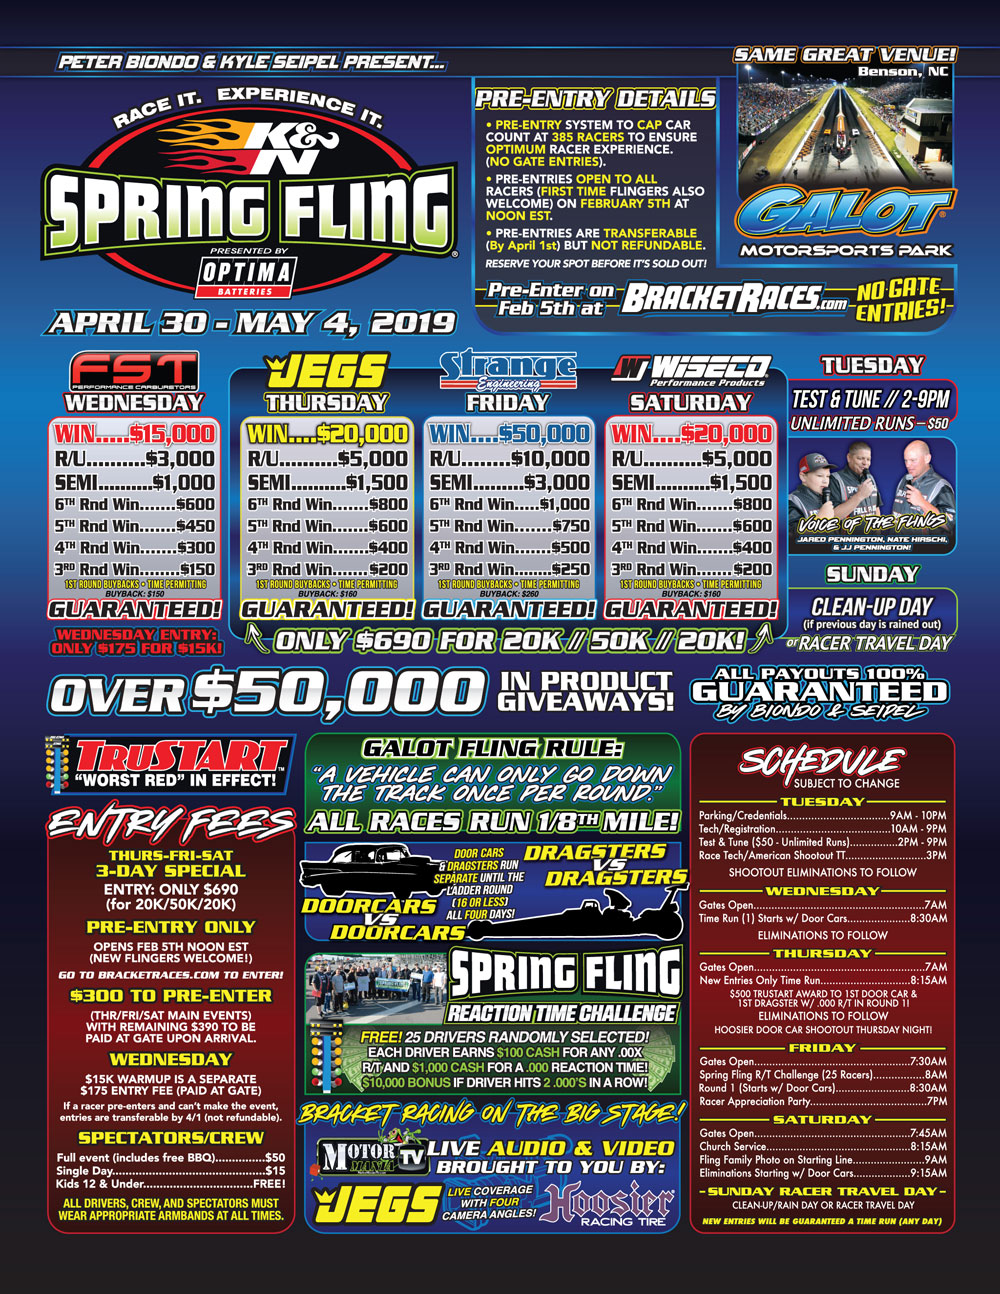 2019 Spring Fling Galot Flyer - Page 1